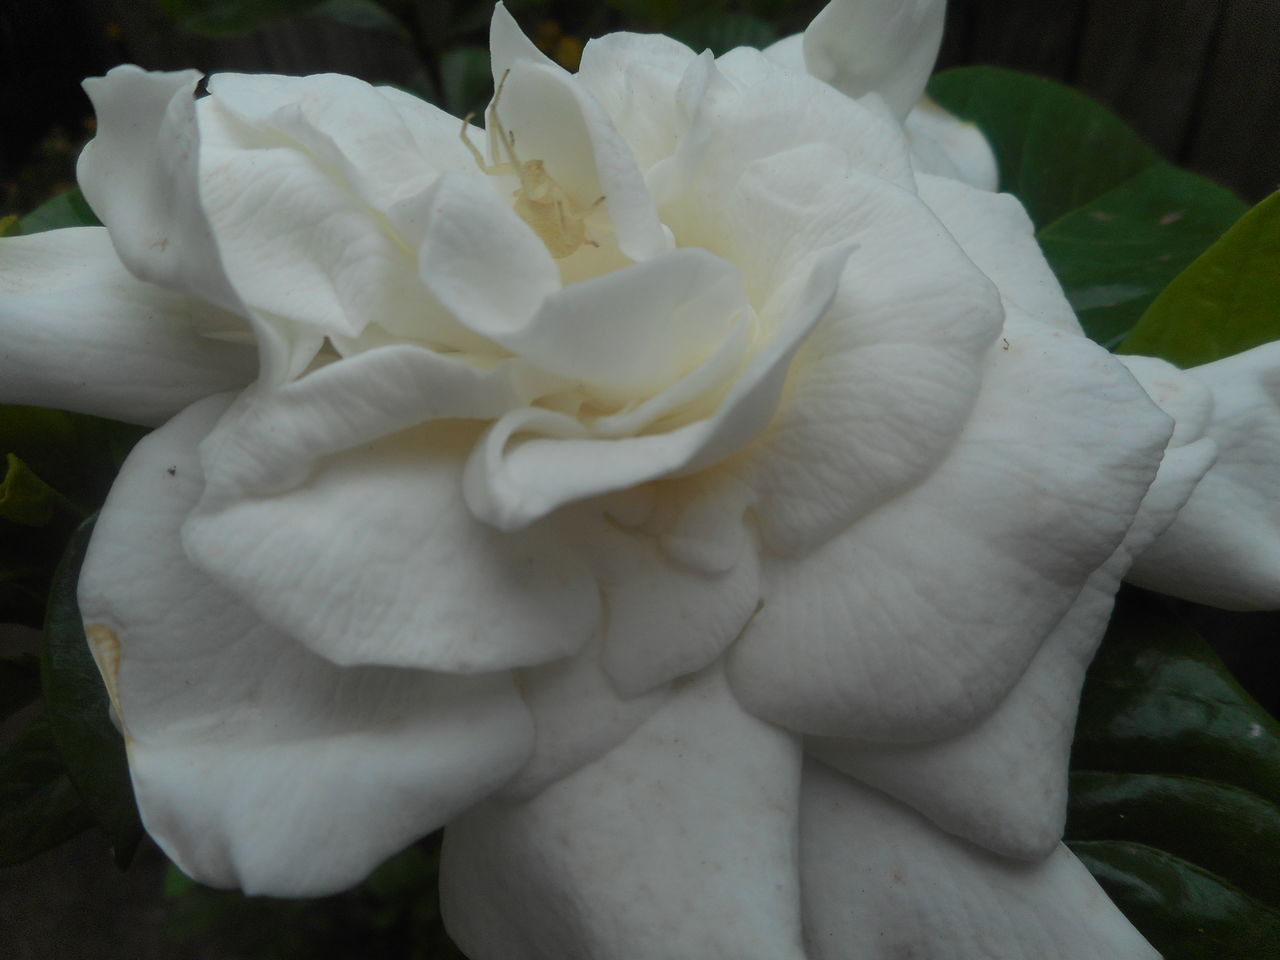 Beauty In Nature Blooming Camouflage Camouflage Animals Close-up Flower Flower Head Flower With Insect Fragility Garden Pest Garden Pests Gardenia Gardenia Flower Gardenias Hidden Beauty Hidden Faces Hidden Gems  Insect Nature Outdoors Pest Petal Plant Transparent White Flower